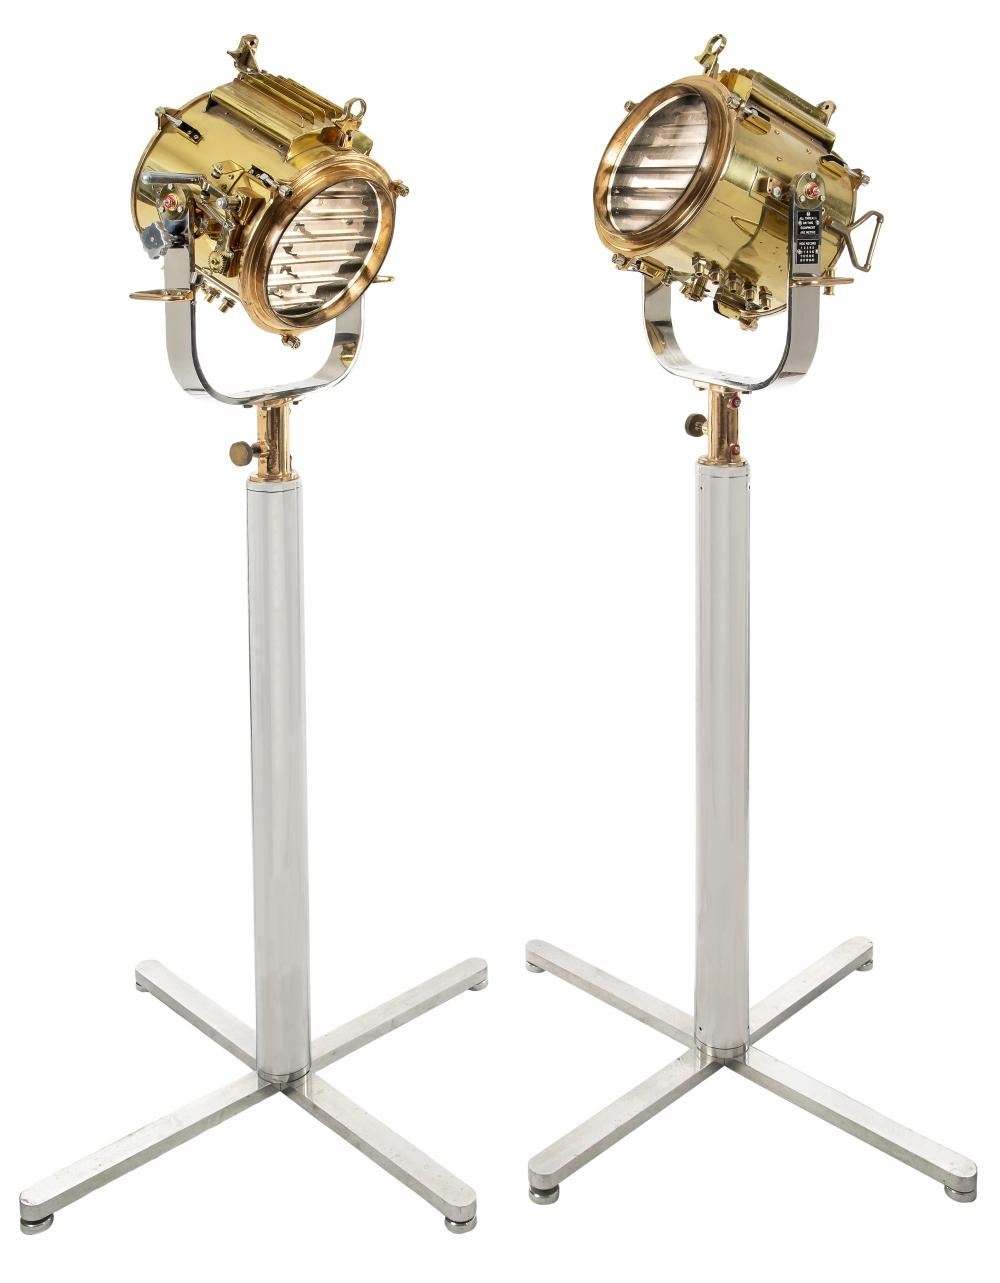 A FINE PAIR OF RECONDITIONED ROYAL NAVY SIGNAL LIGHTS, CIRCA 1940